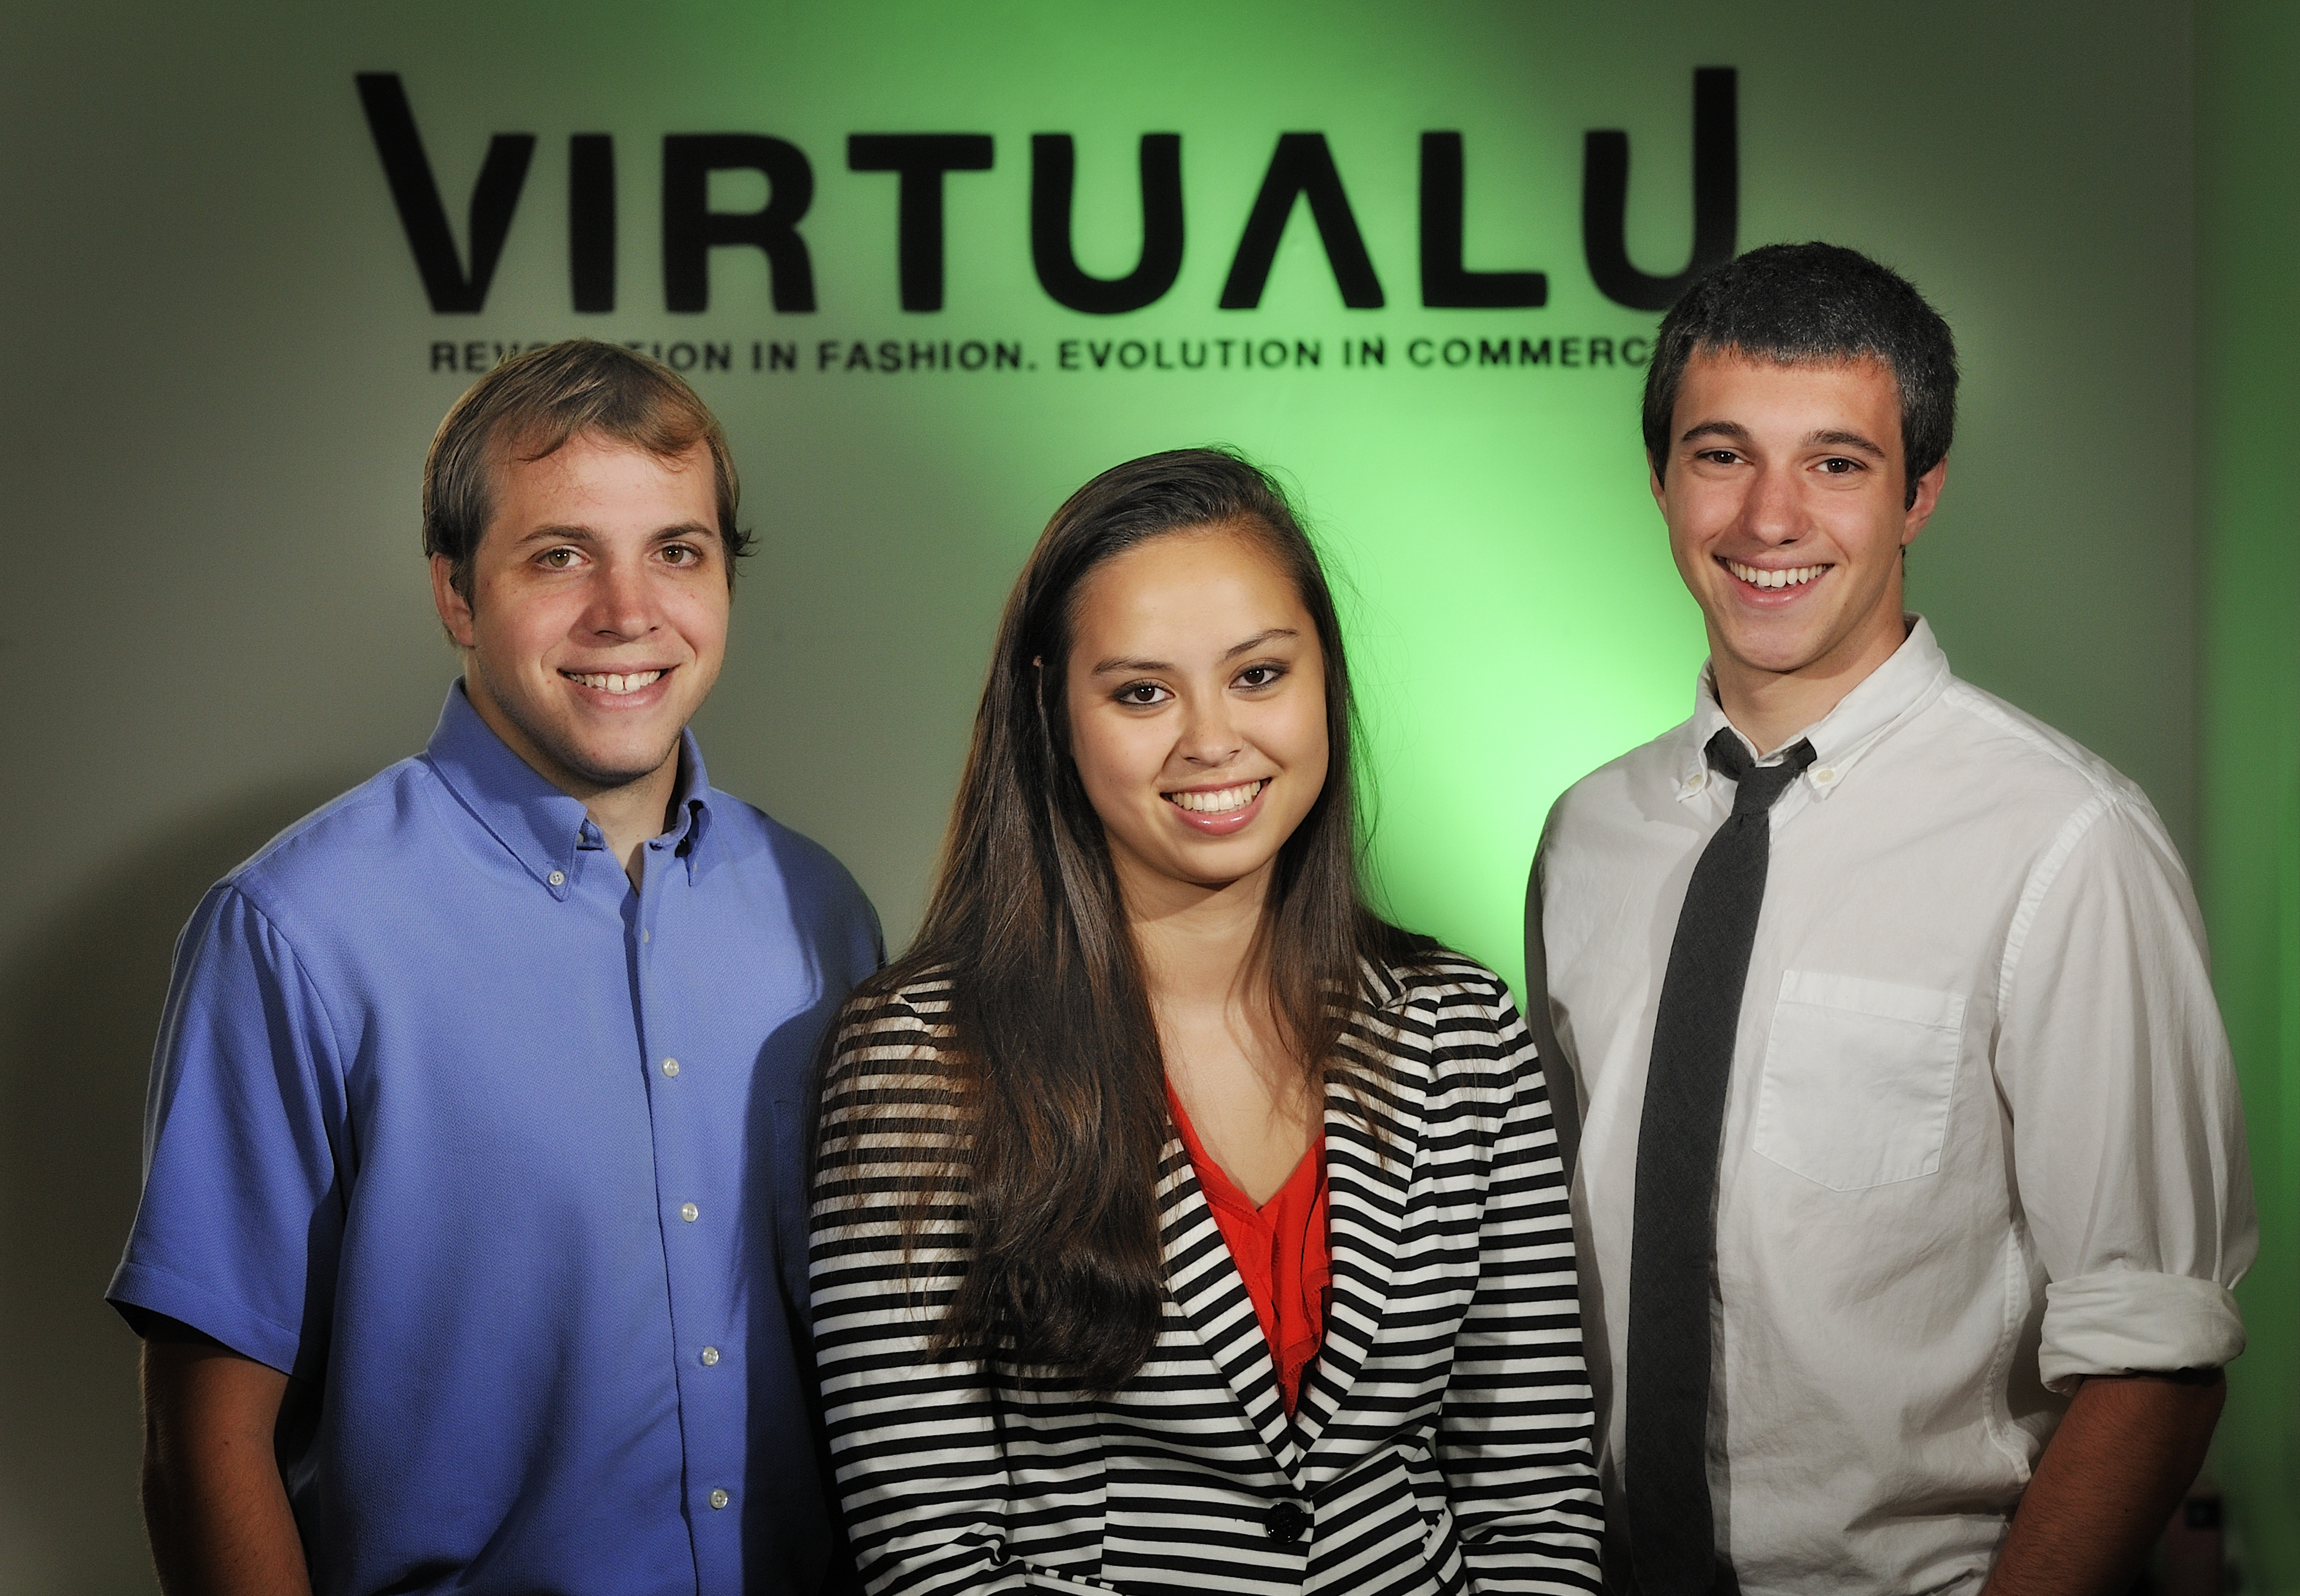 The VirtualU co-founders are (left to right) Louis Cirillo, Caroline Pugh, and Nick Gagianas.